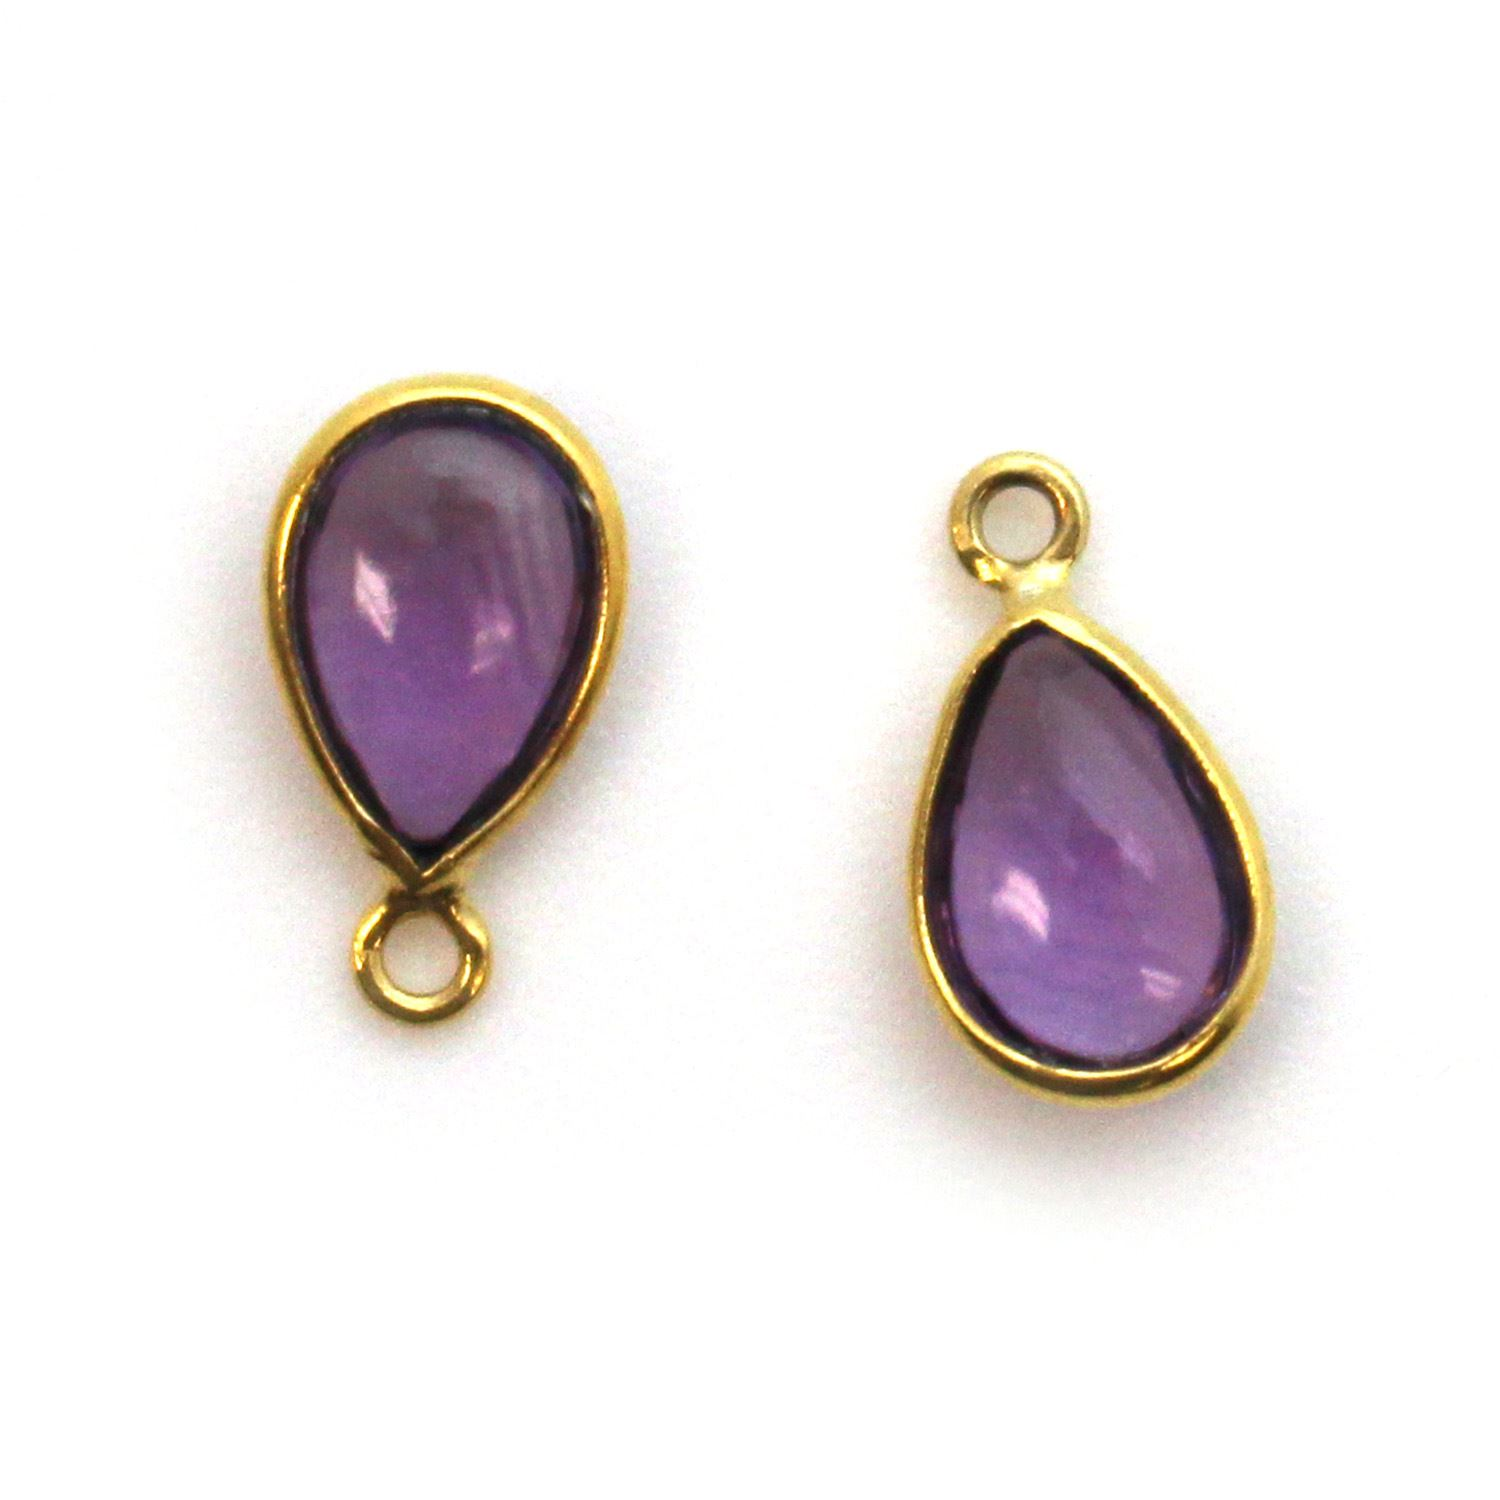 Bezel Charm Pendant - Gold Plated Sterling Silver Charm - Natural Amethyst - Tiny Teardrop Shape